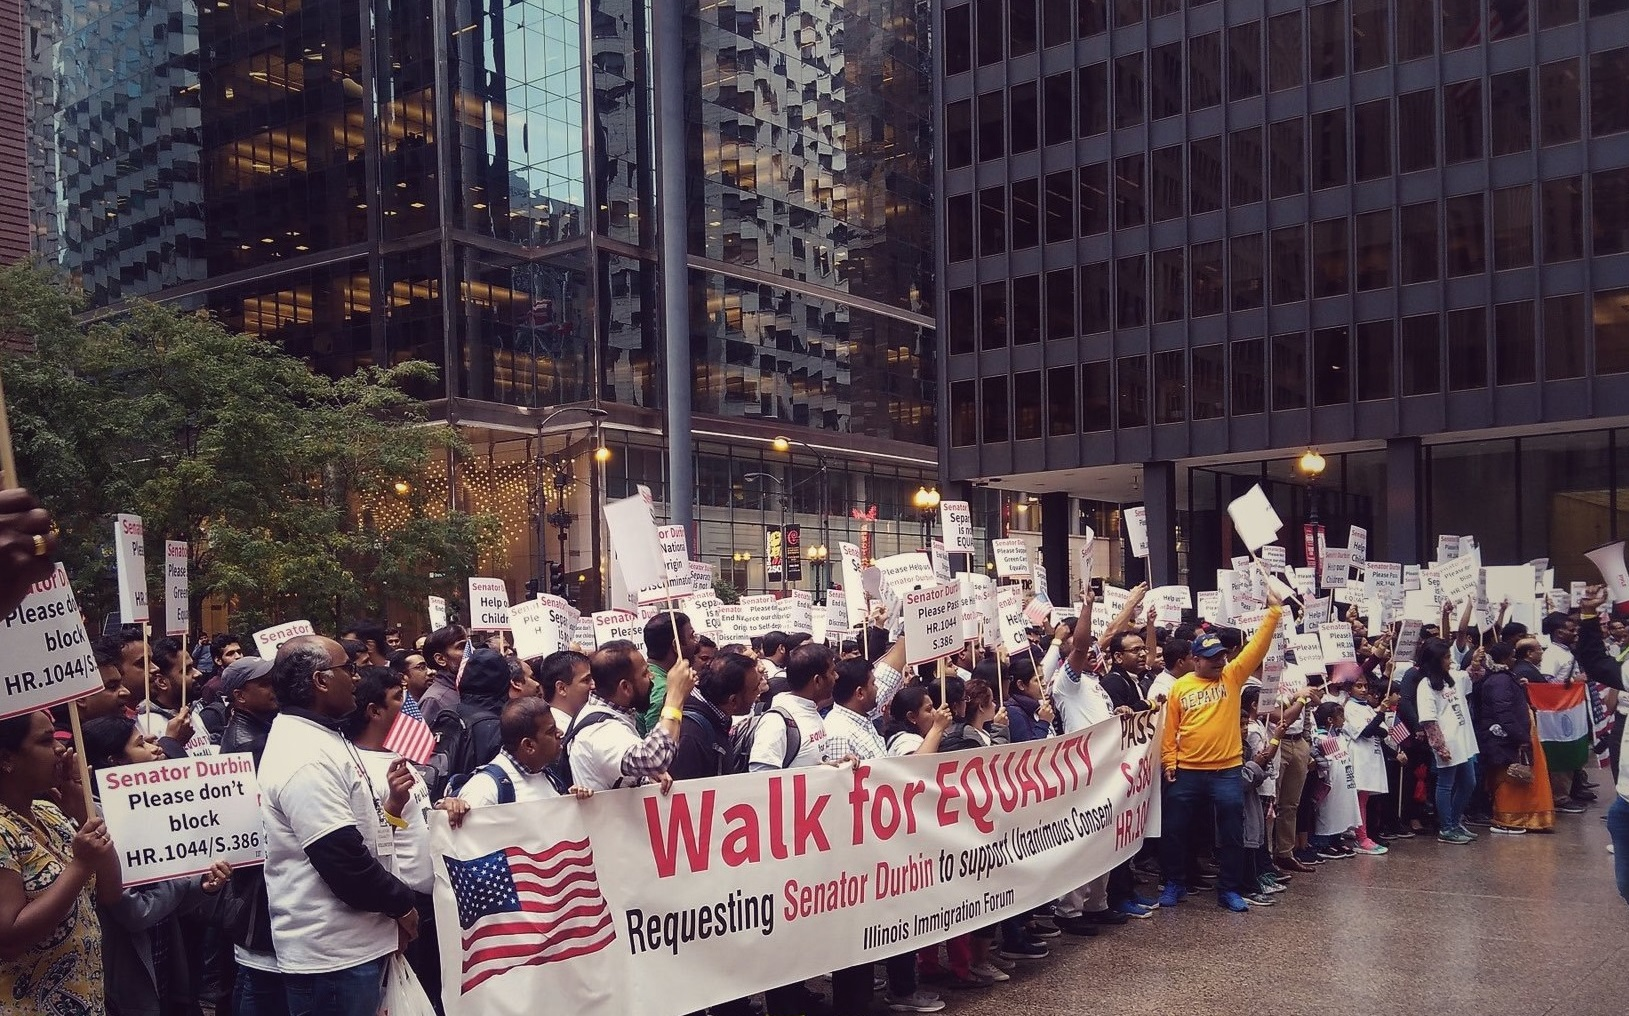 Indian immigration activists protesting in Chicago on Thursday.